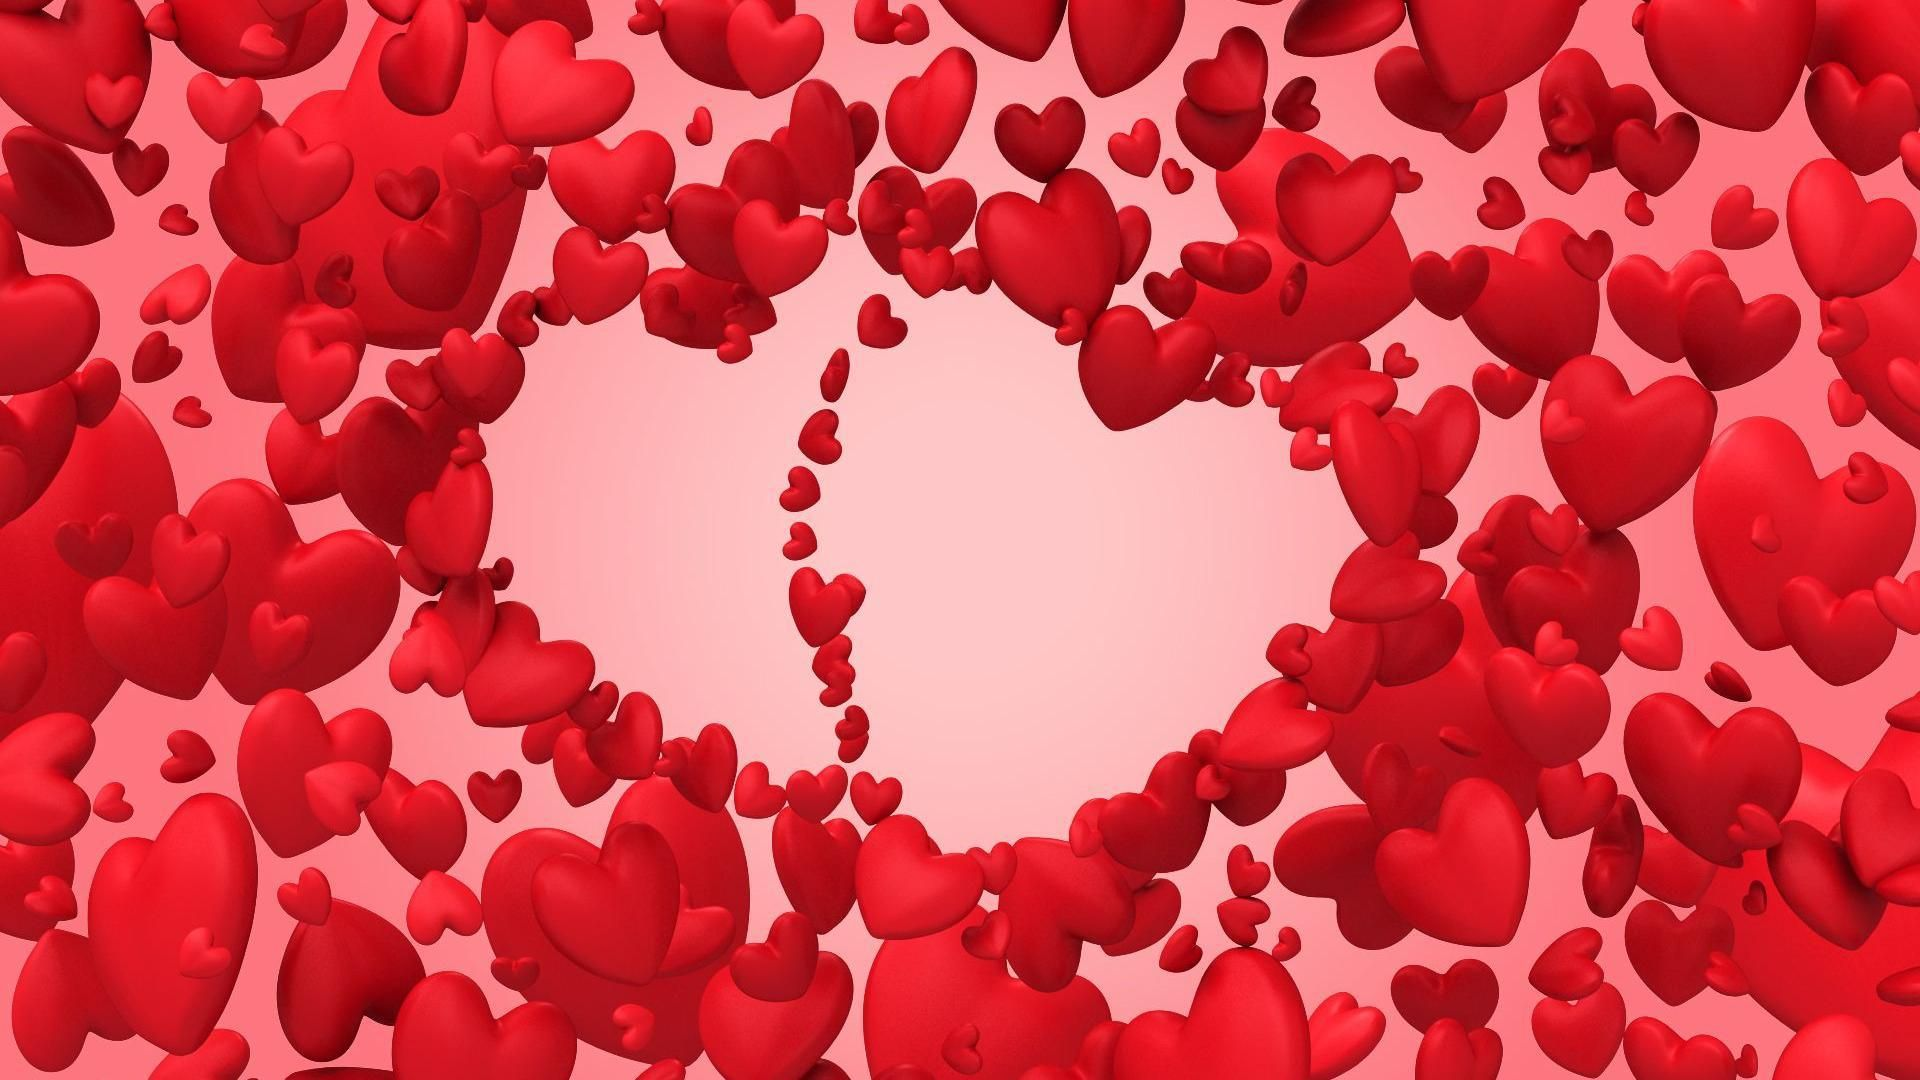 love pics images of hearts and kisses. day heart wallpapers hd